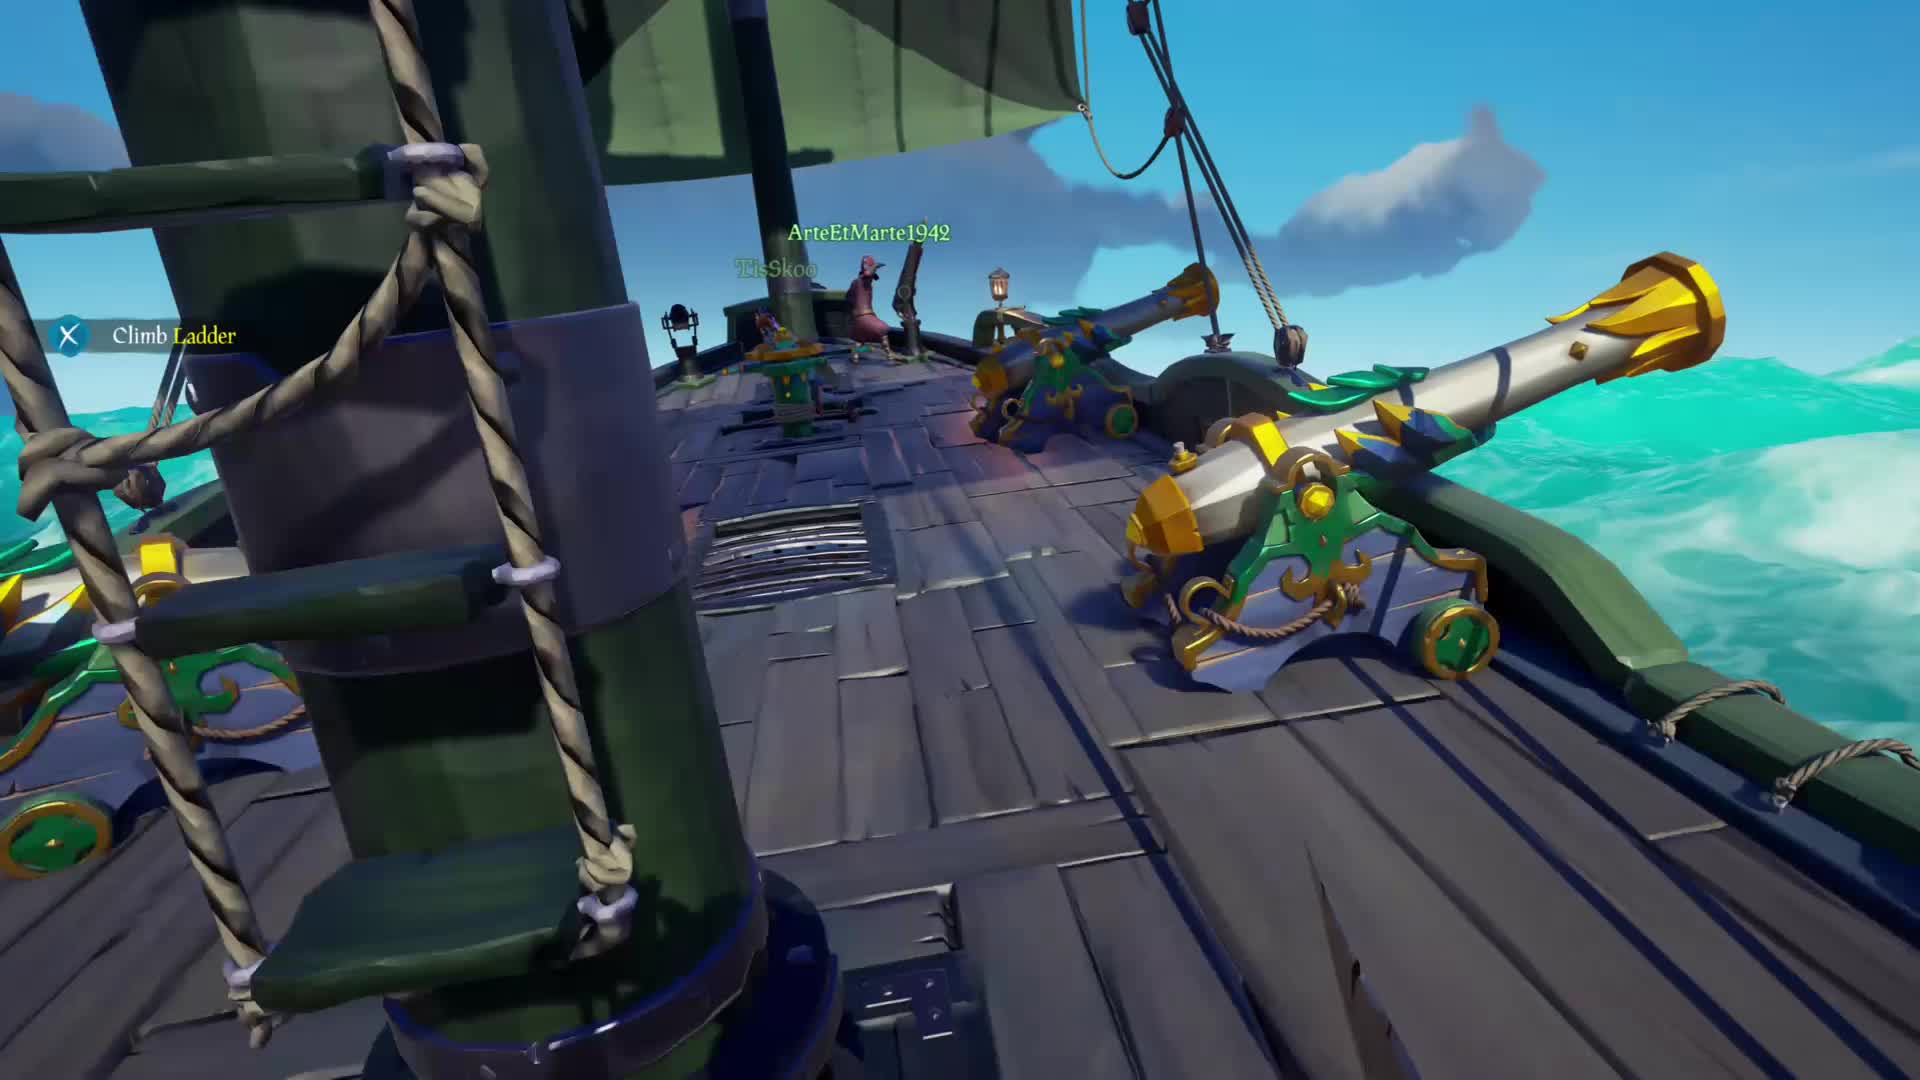 SeaofThieves, ThatDopeeGuy, gamer dvr, xbox, xbox one, Lol GIFs